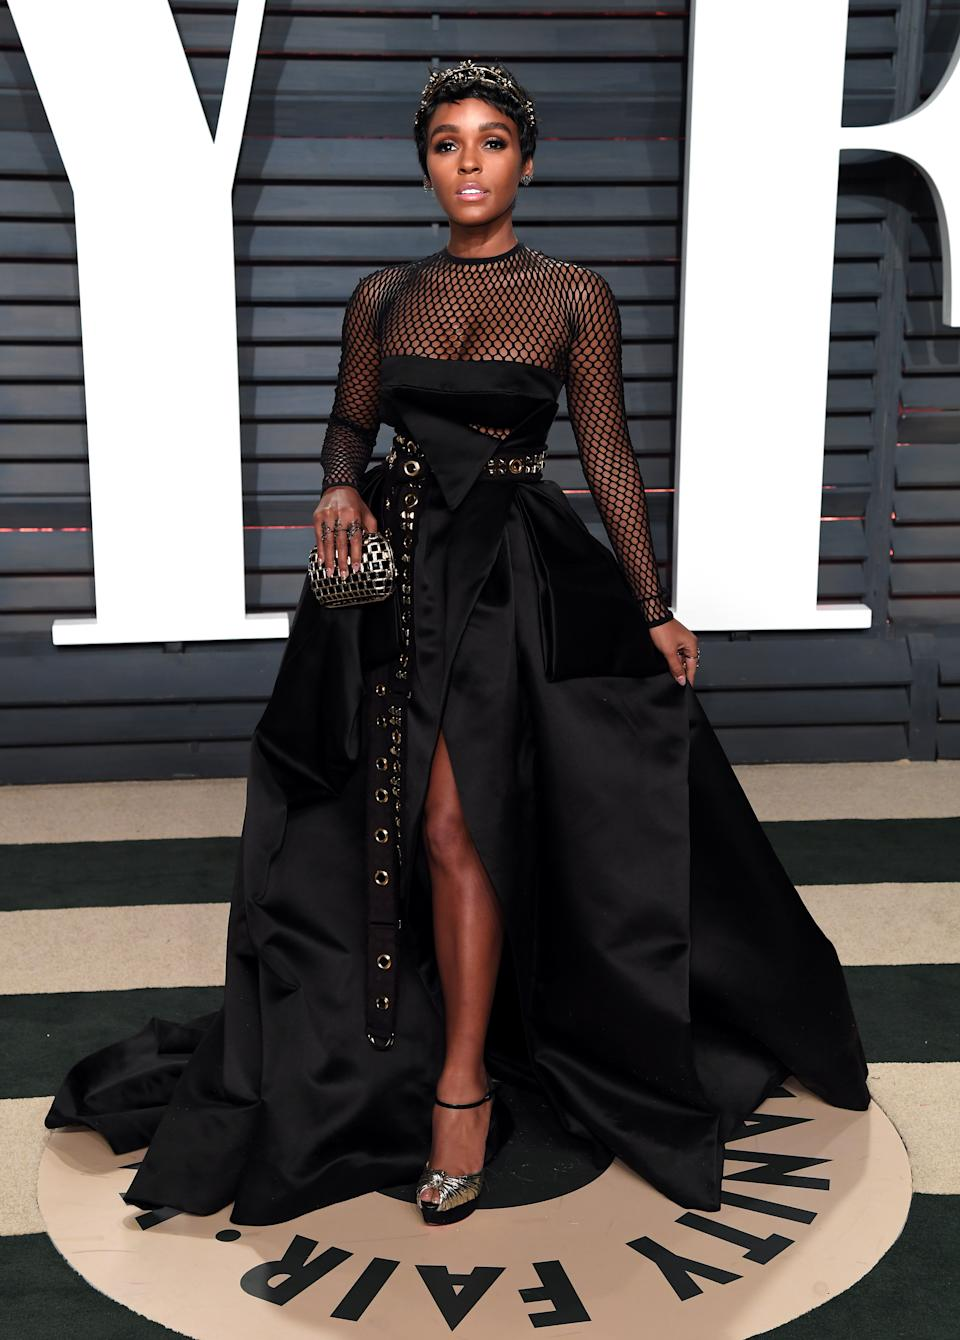 Janelle Monae at the Vanity Fair Oscar Party [Photo: Getty]